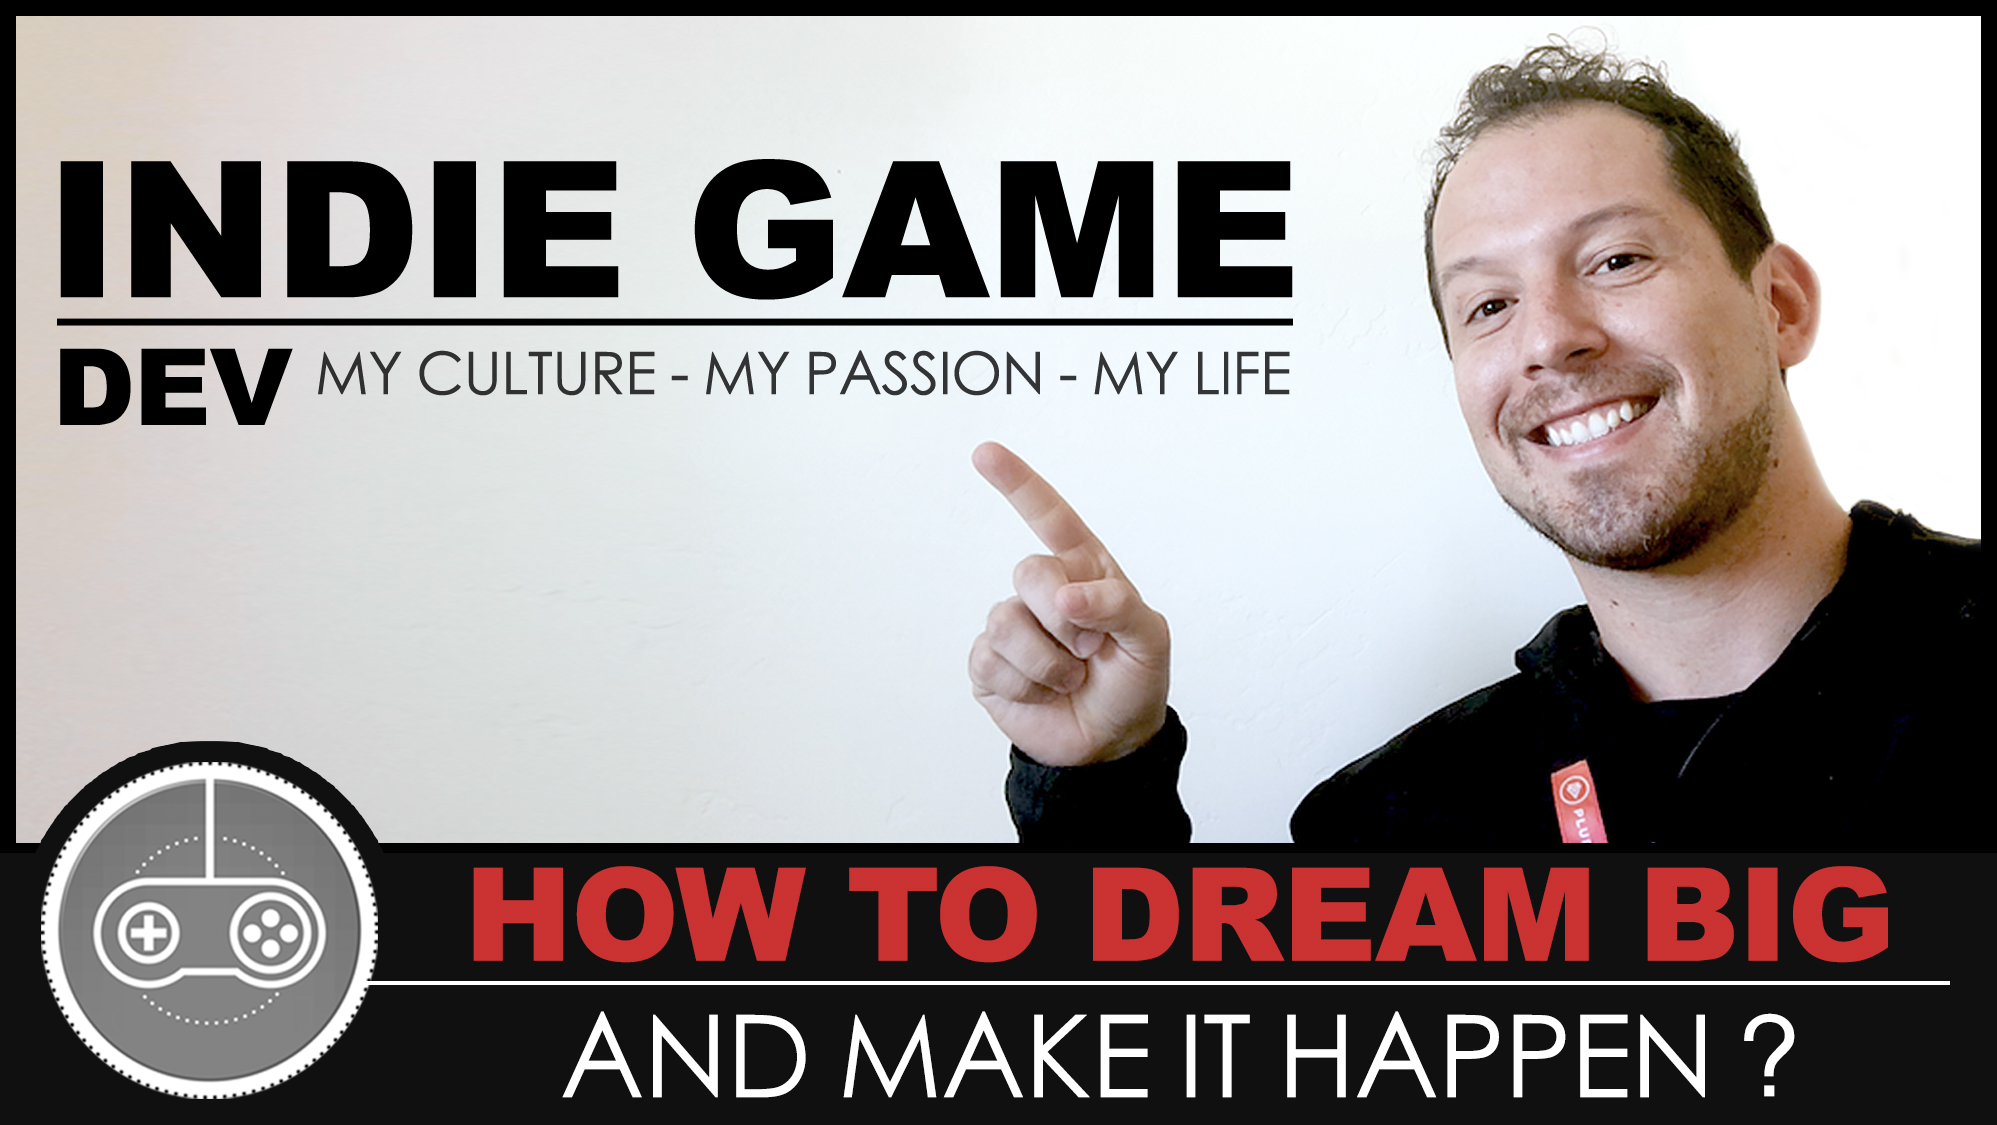 HOW TO DREAM BIG AND MAKE IT HAPPEN? Indie game developer motivation